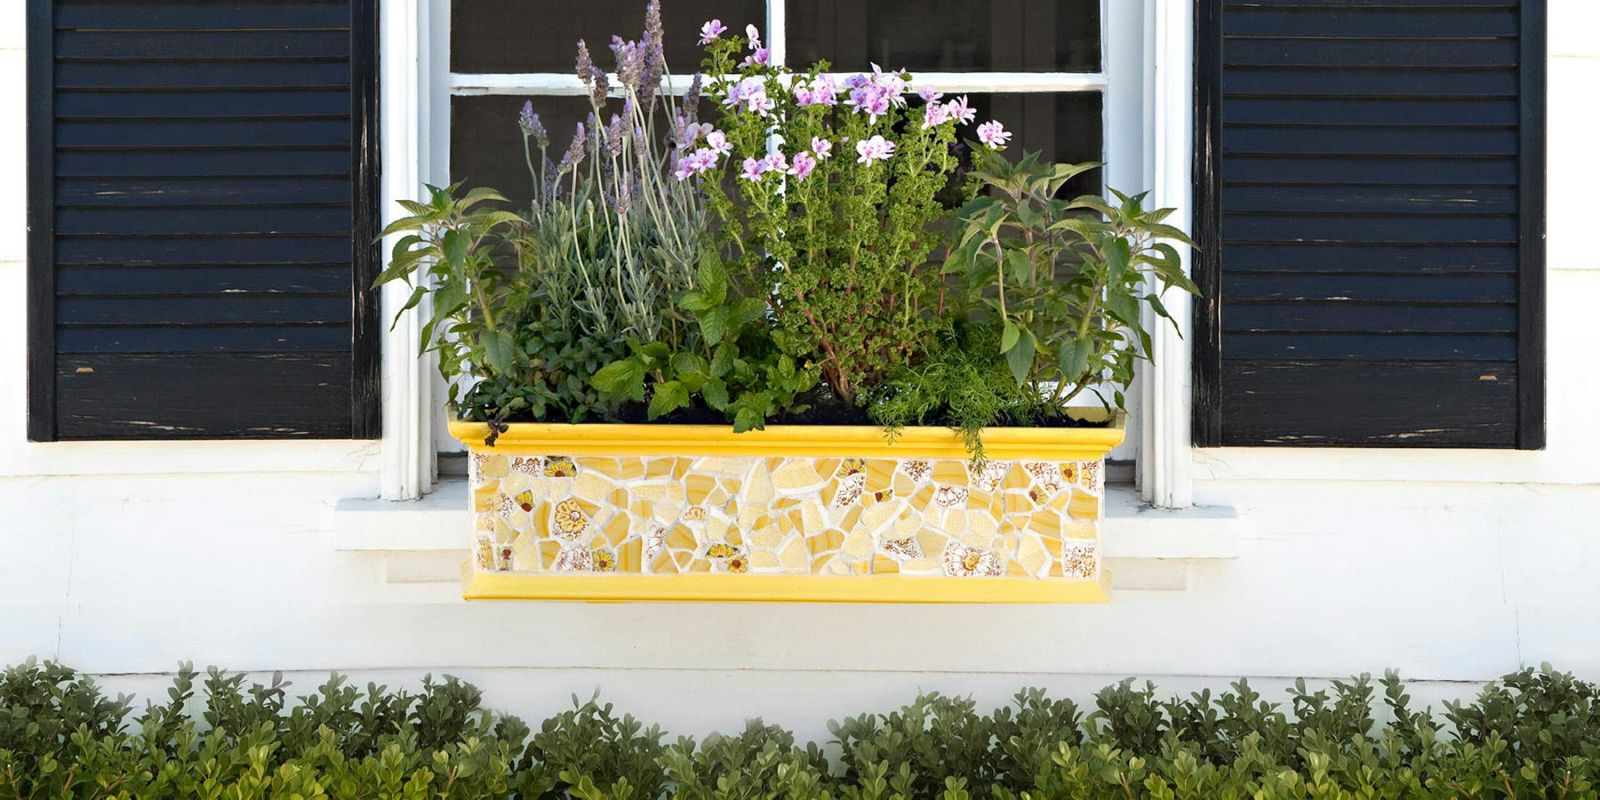 18 Fun Gardening Ideas For Your Window Boxes   Window Box Flowers, Tips,  And Ideas